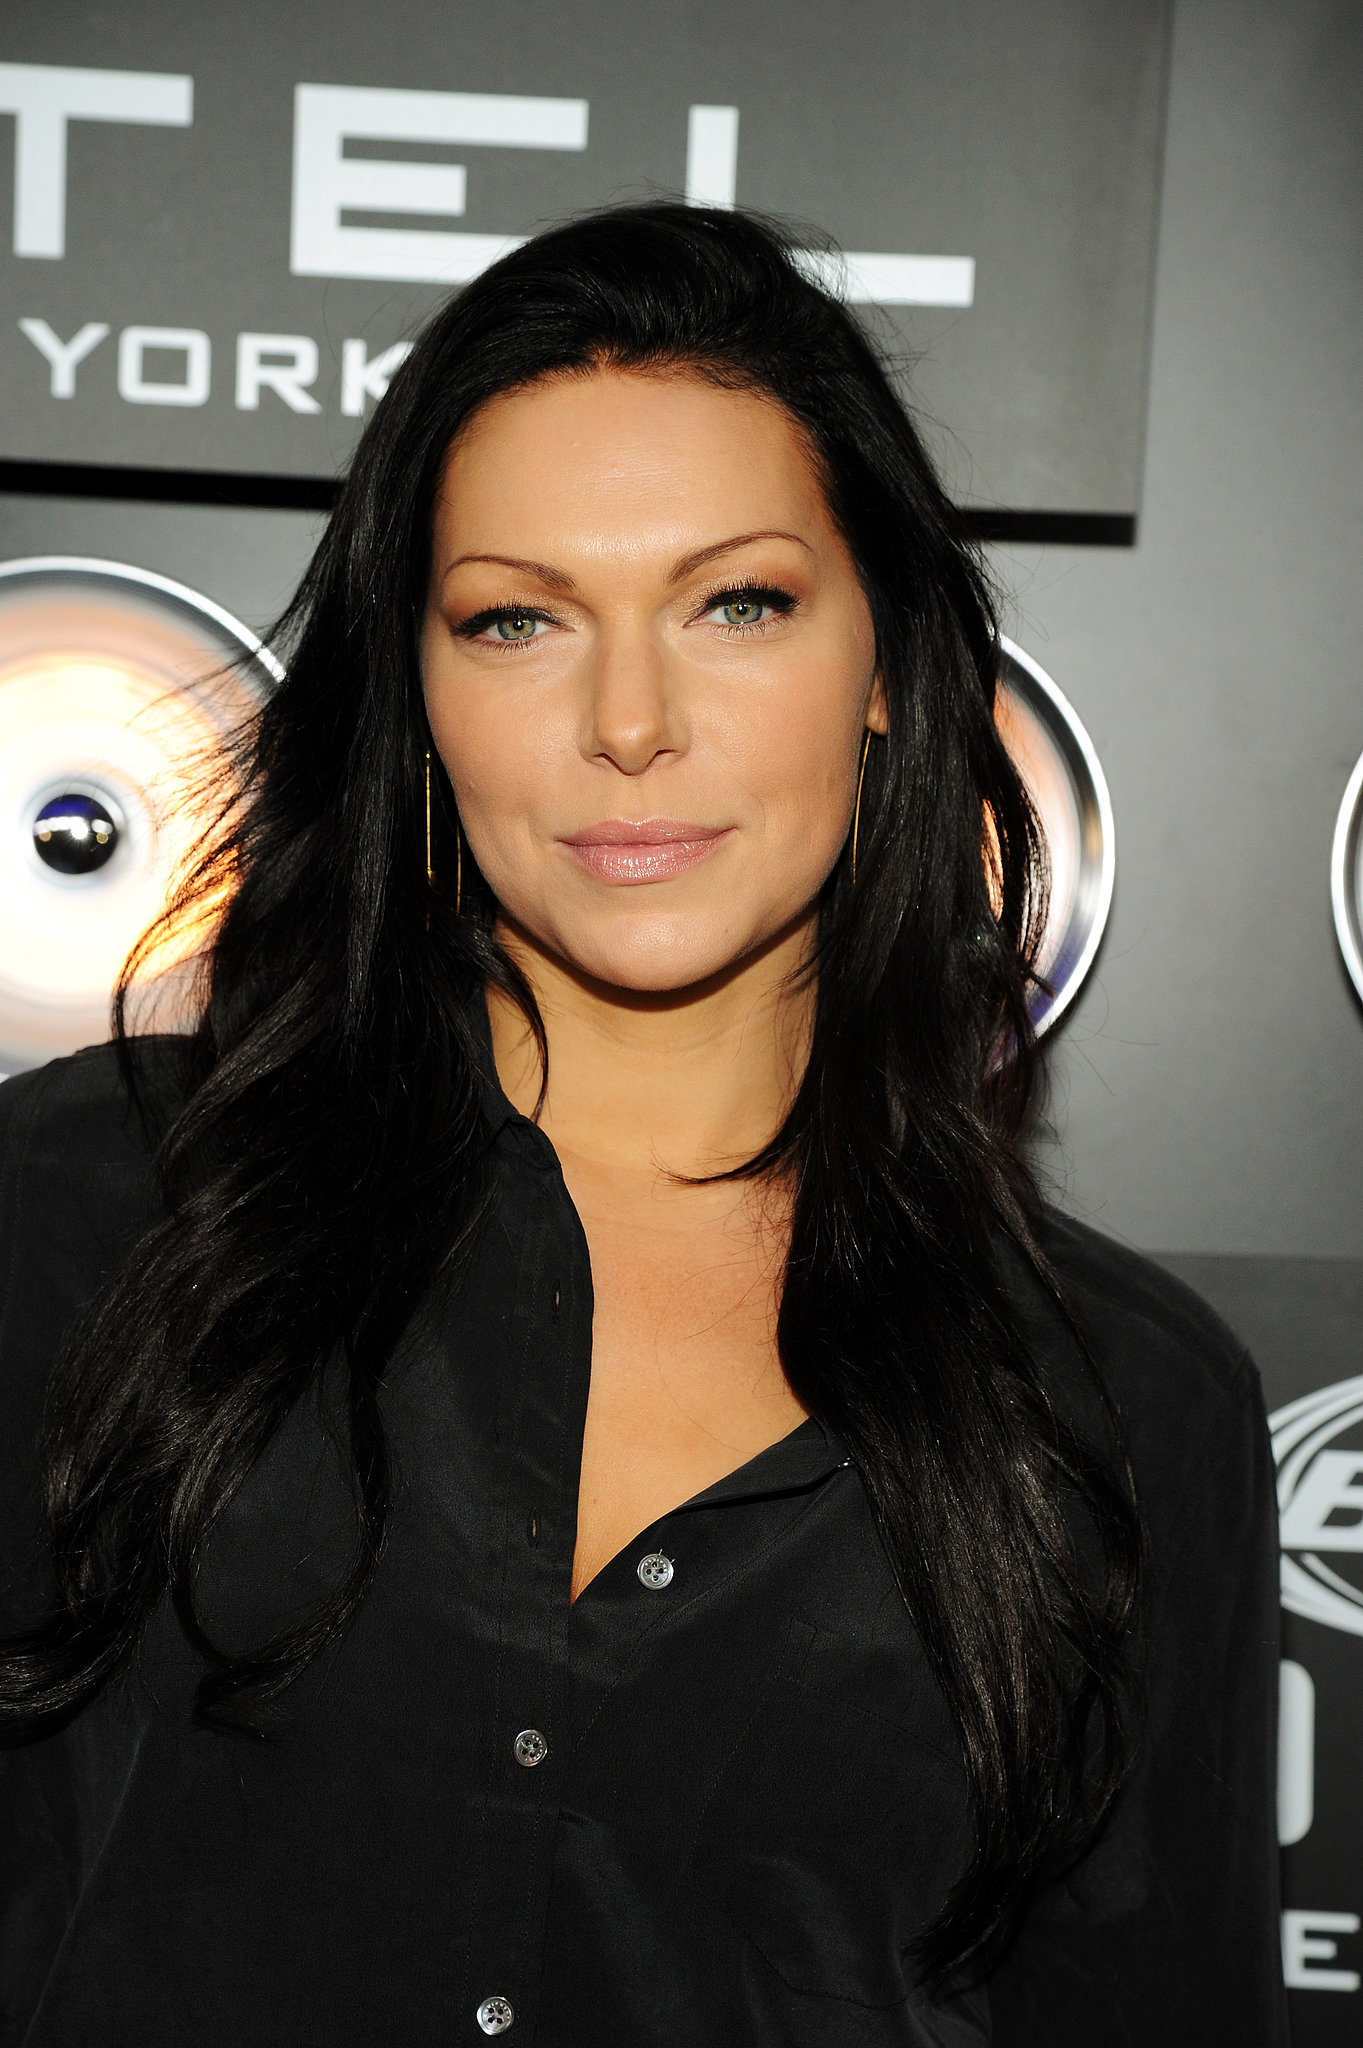 The 38-year old daughter of father Michael Prepon and mother Marjorie Coll Laura Prepon in 2018 photo. Laura Prepon earned a 1.4 million dollar salary - leaving the net worth at 12 million in 2018